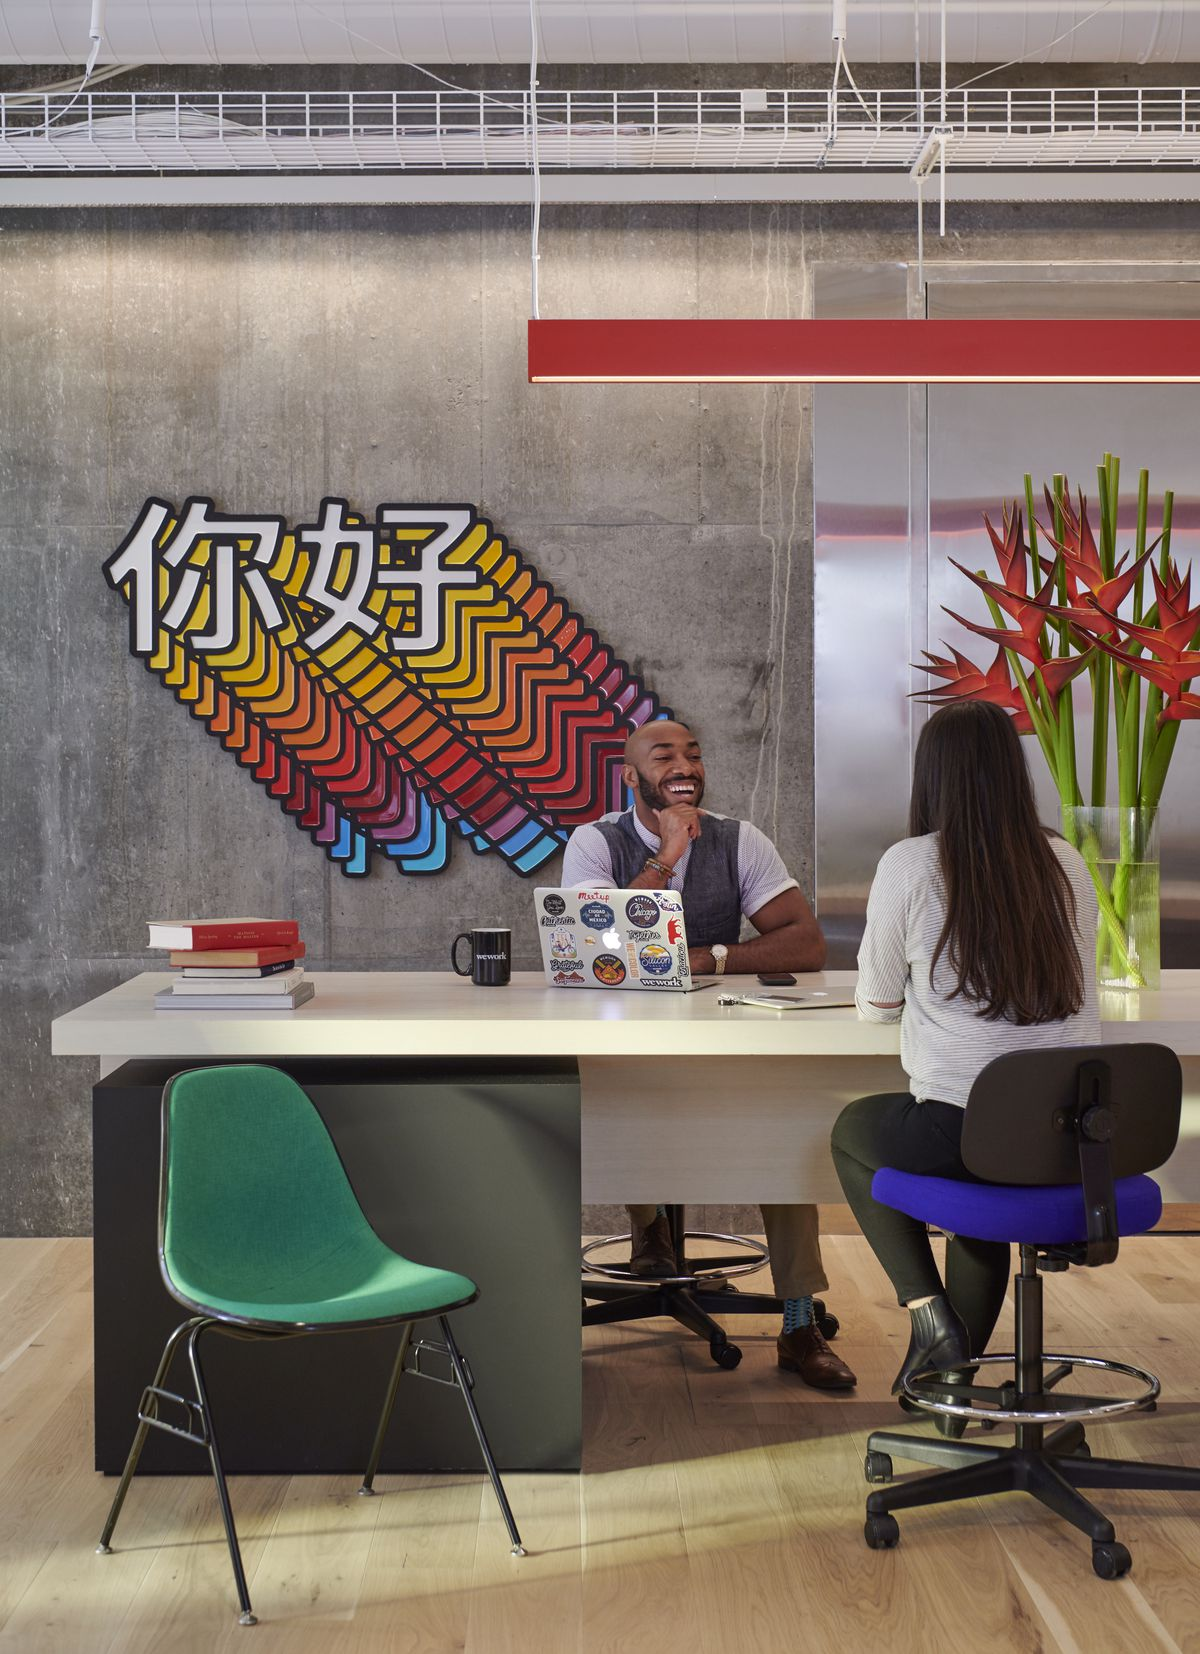 WeWork, home to freelancers and startups, is taking